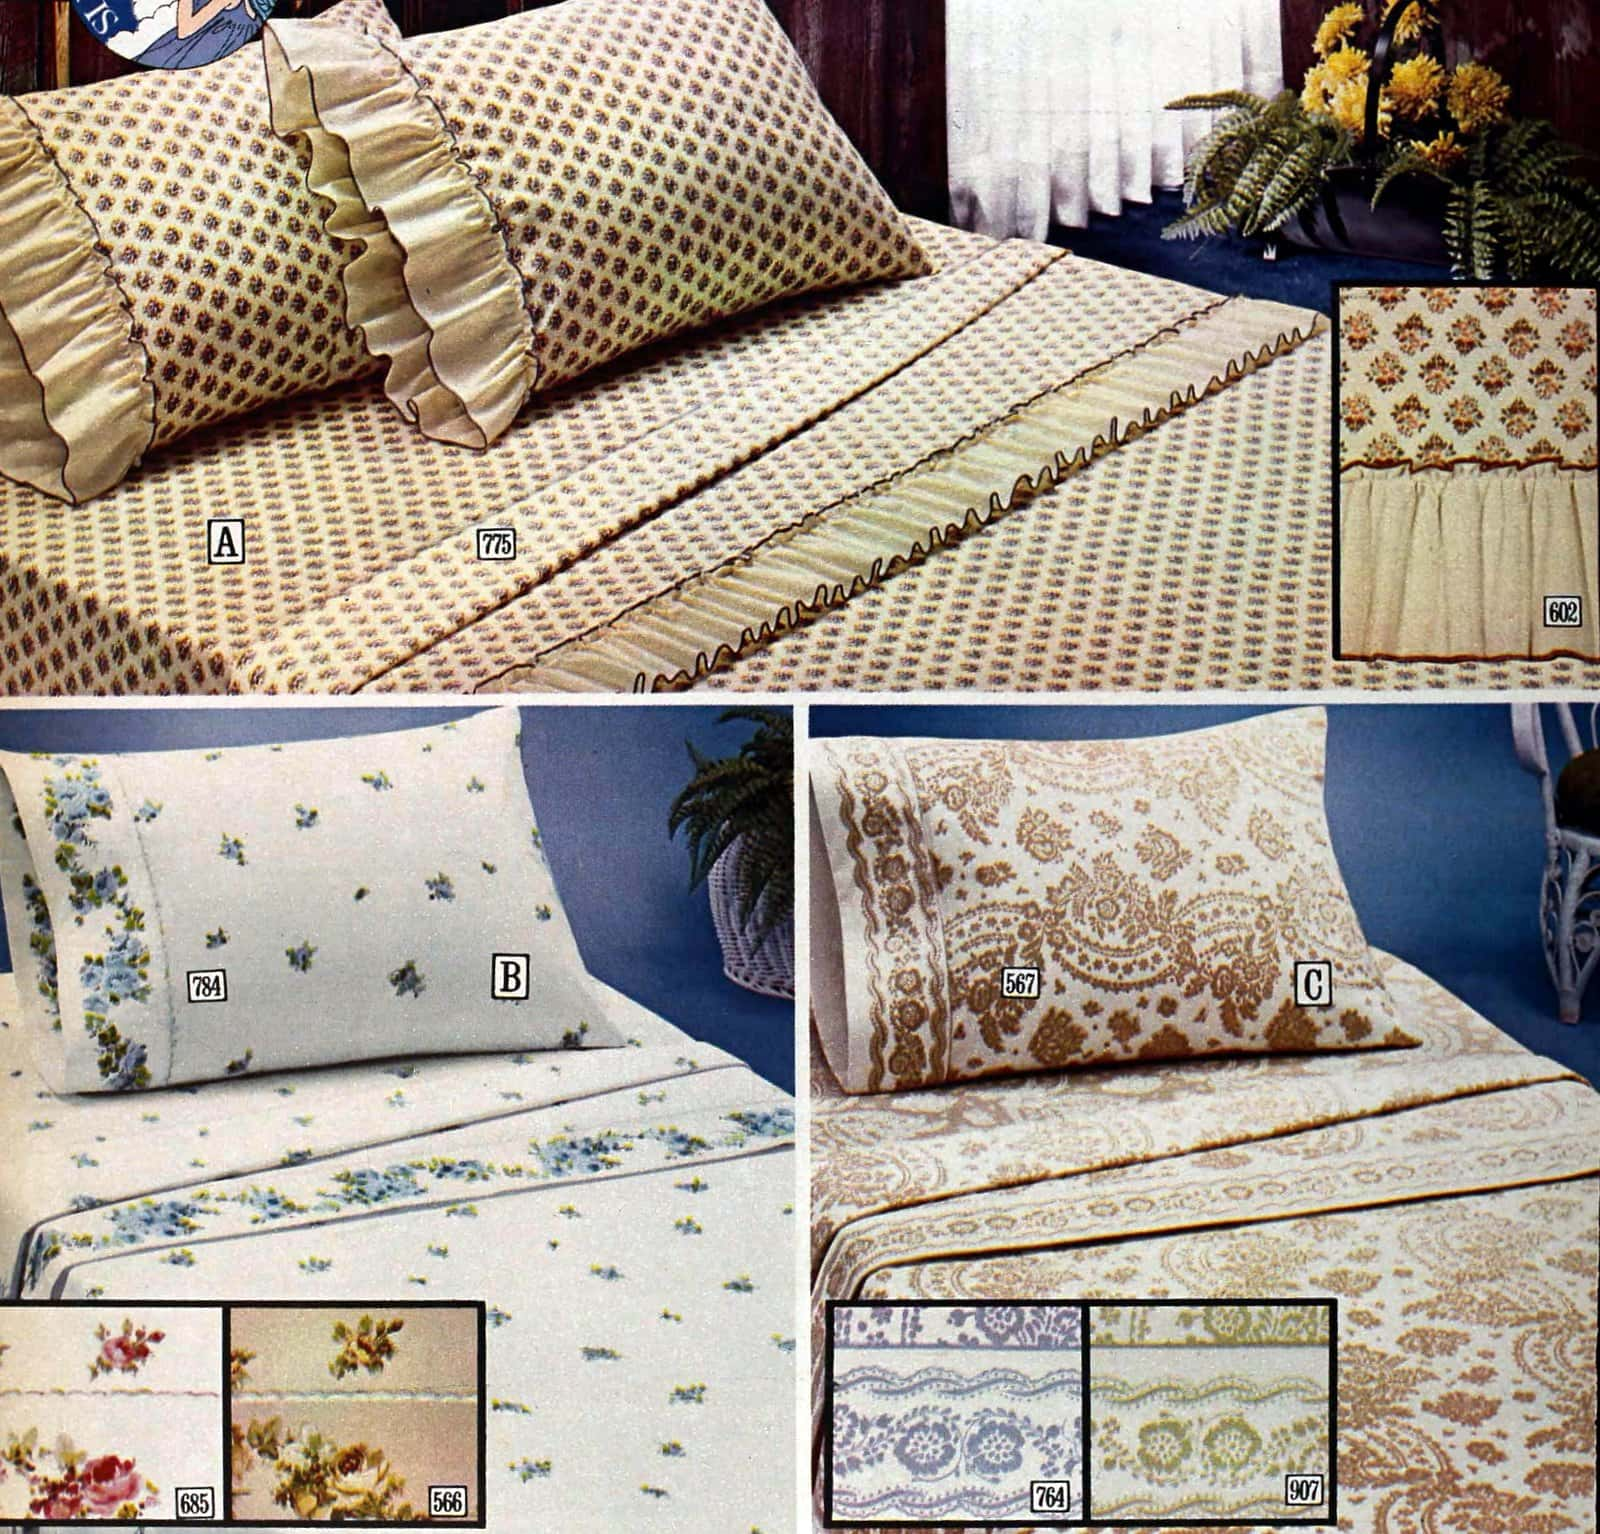 Vintage 1970s bedding and sheets with classic and country patterns